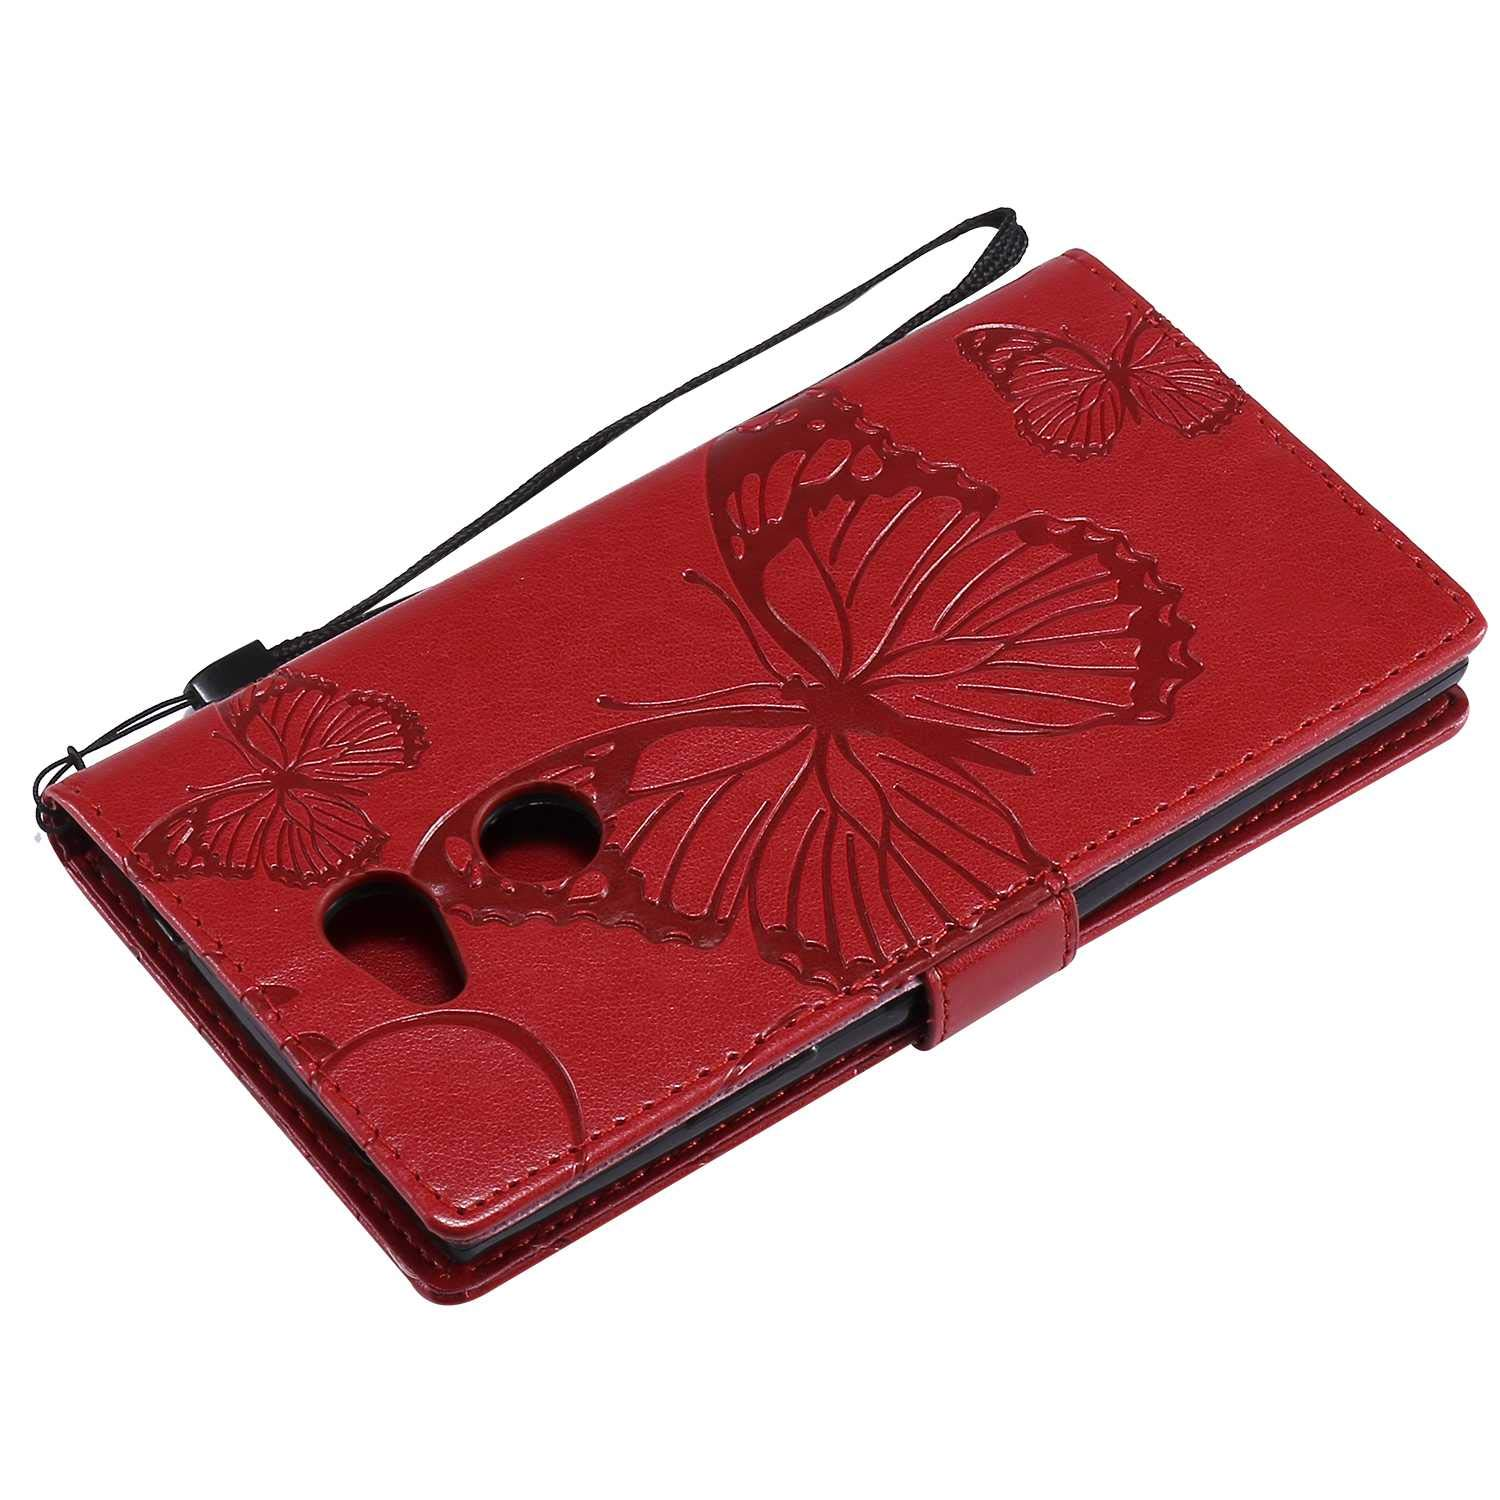 Sony Xperia L2 Case Cover Wallet Flip Case for Sony Xperia L2 Case -Rose Gold Drop Proof High Quality Pu Leather Card//ID Holder Bravoday